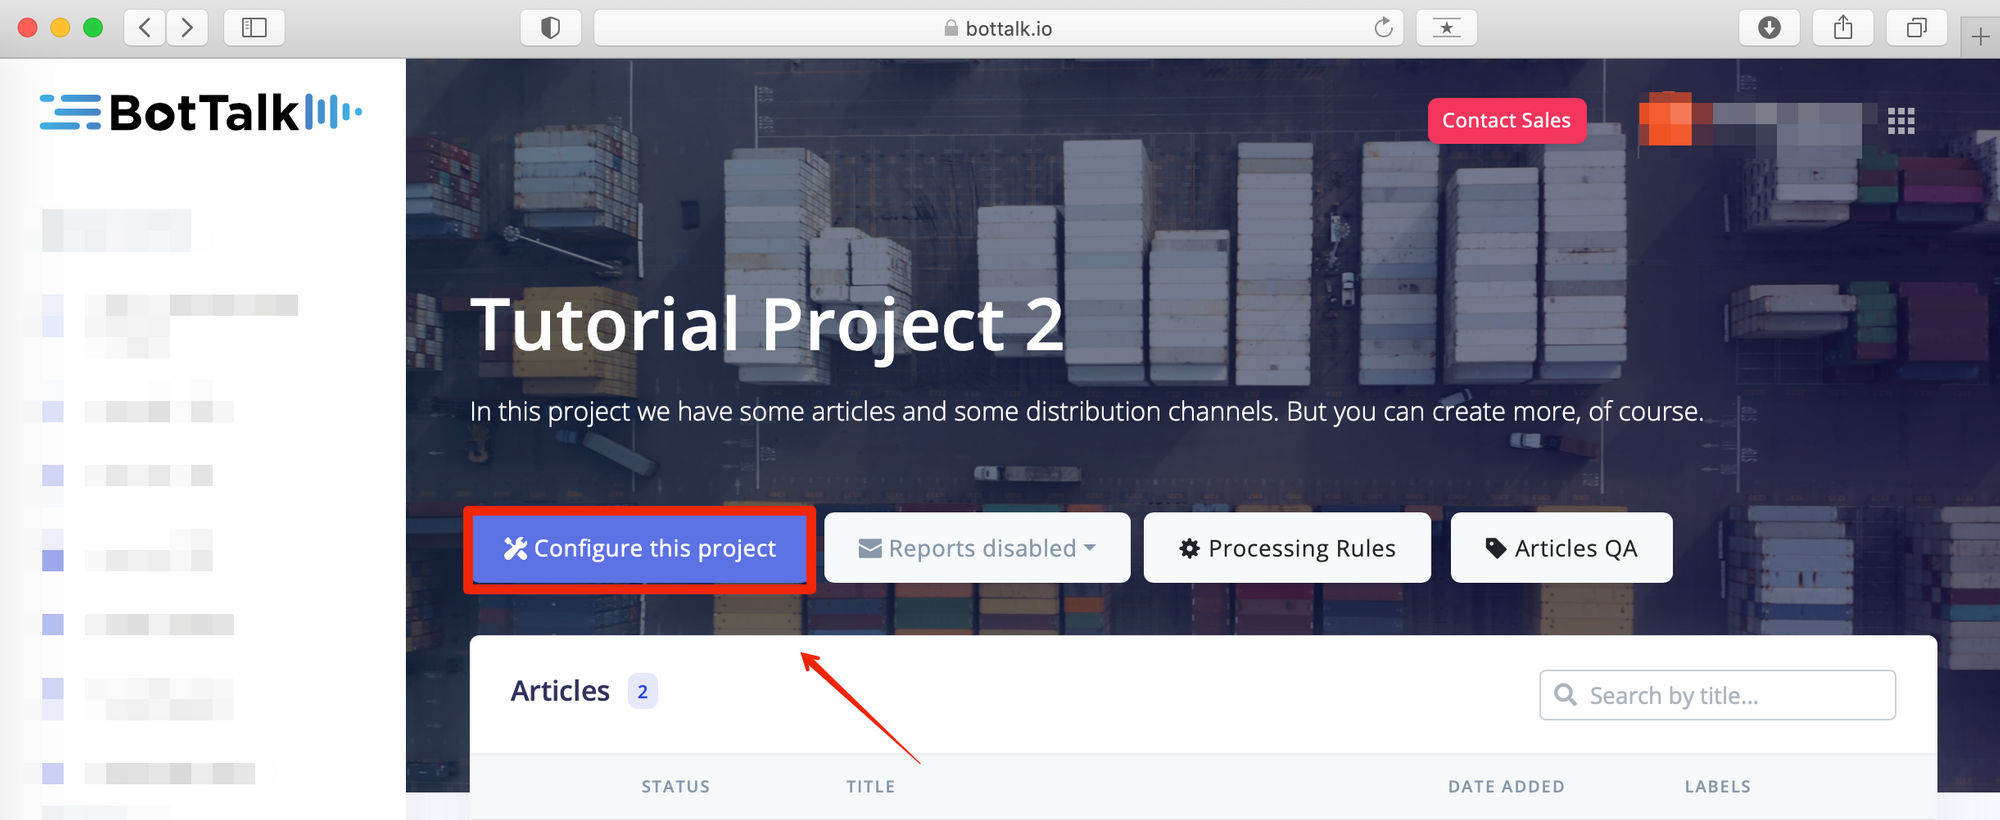 Configuration of BotTalk projects